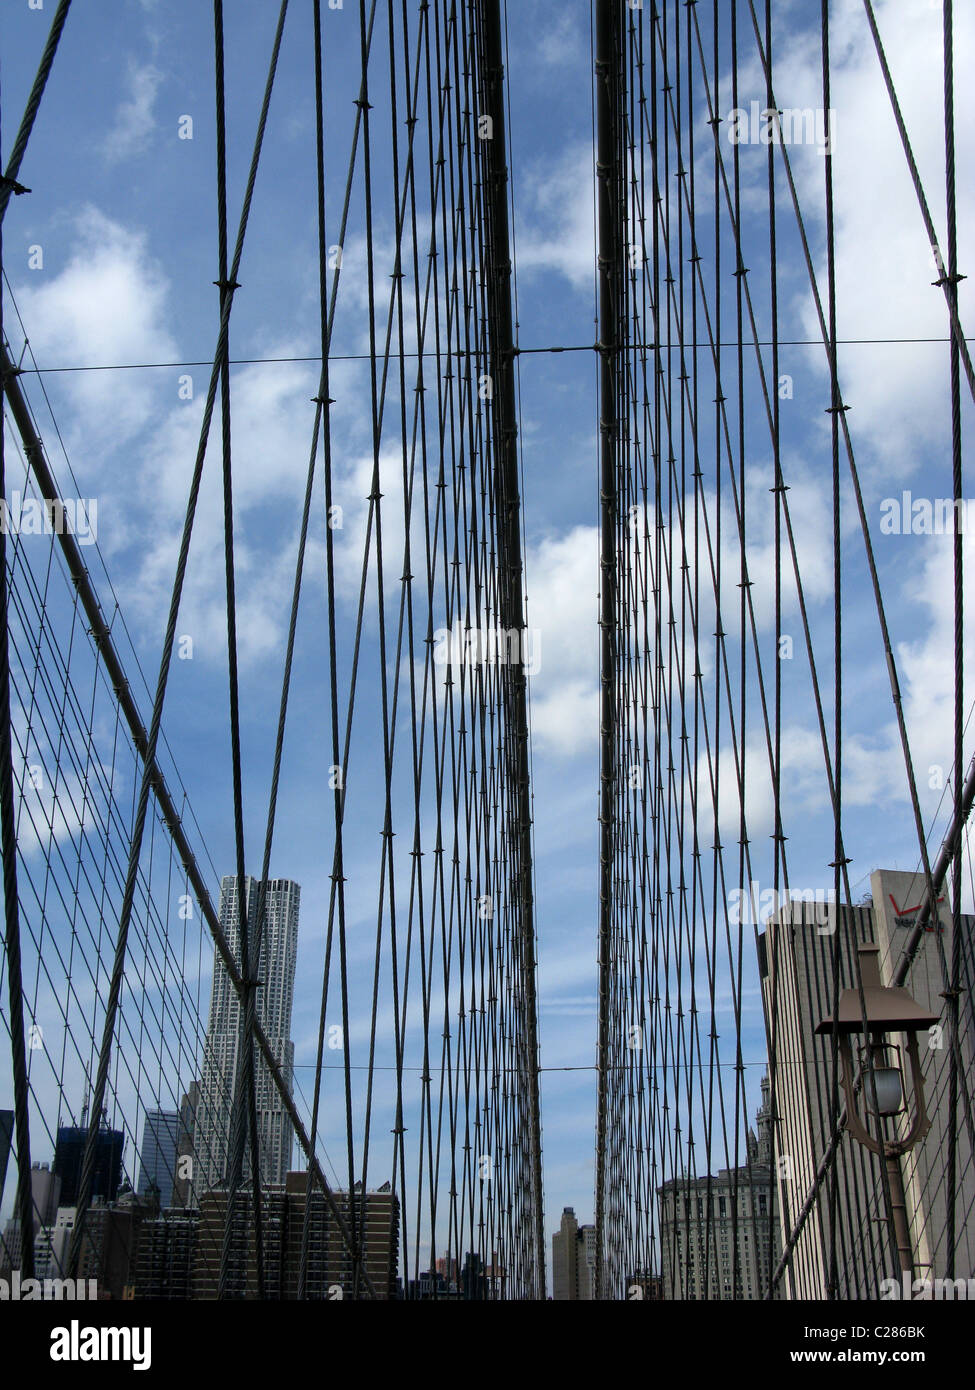 Brooklyn Bridge, New York City, USA - Stock Image